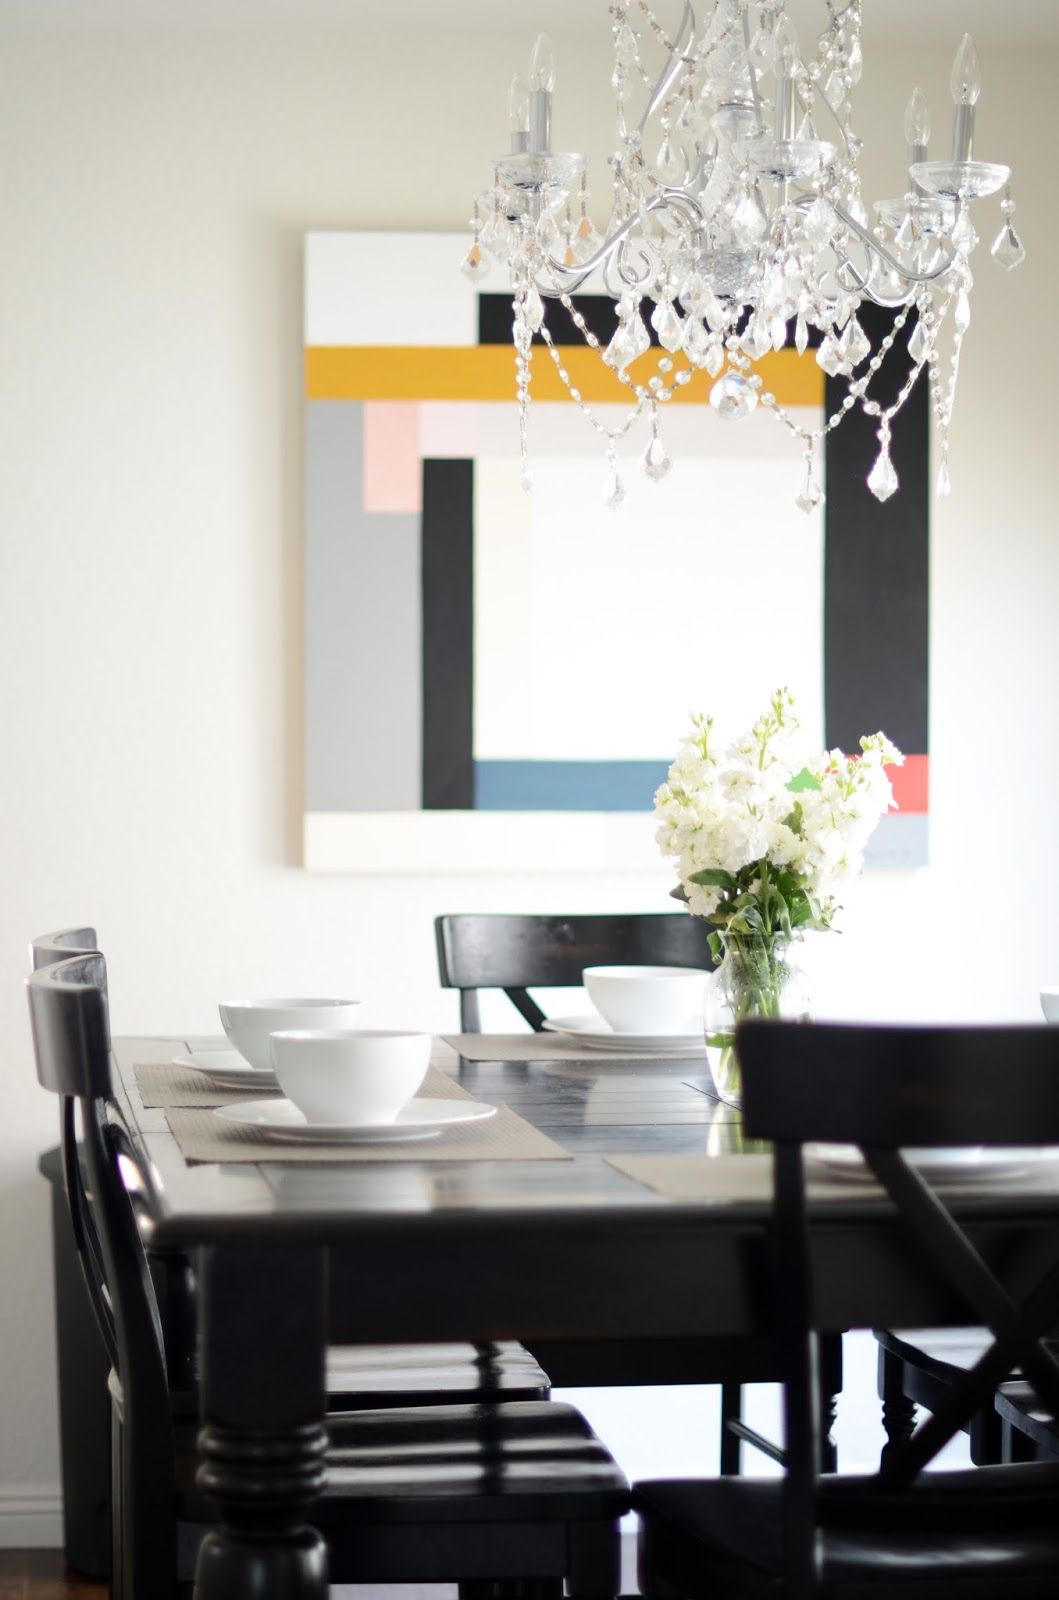 HOME TOUR: KITCHEN, DINING, AND LIVING ROOM EDITION | Art styles ...